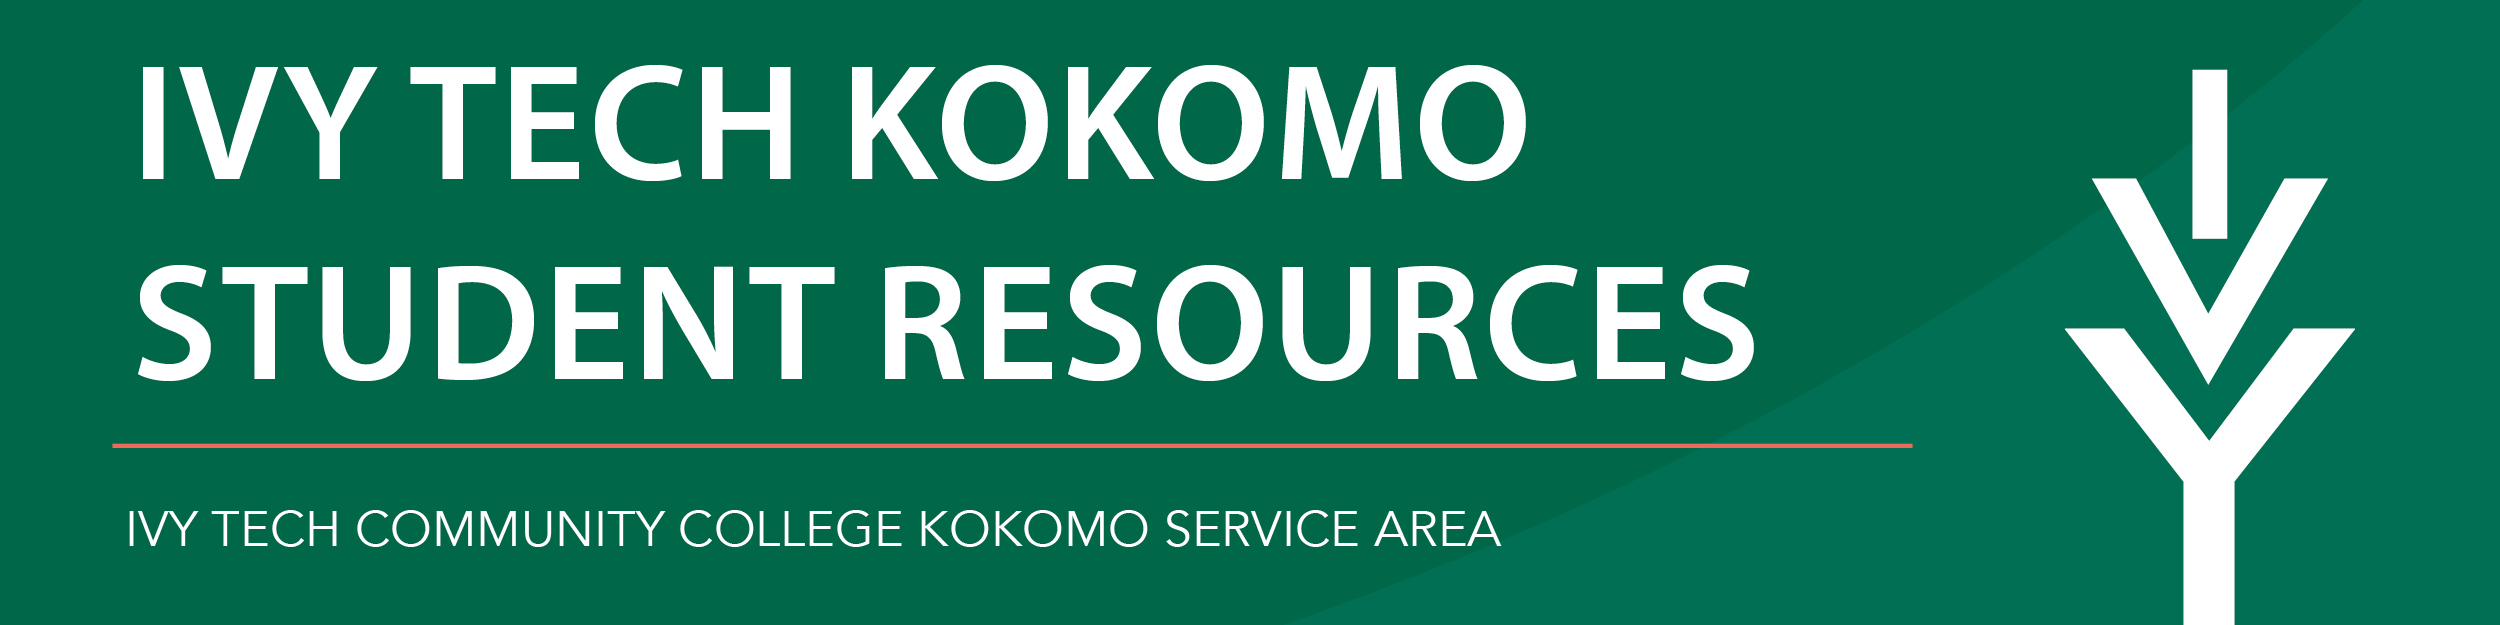 Ivy Tech Kokomo Student Resources